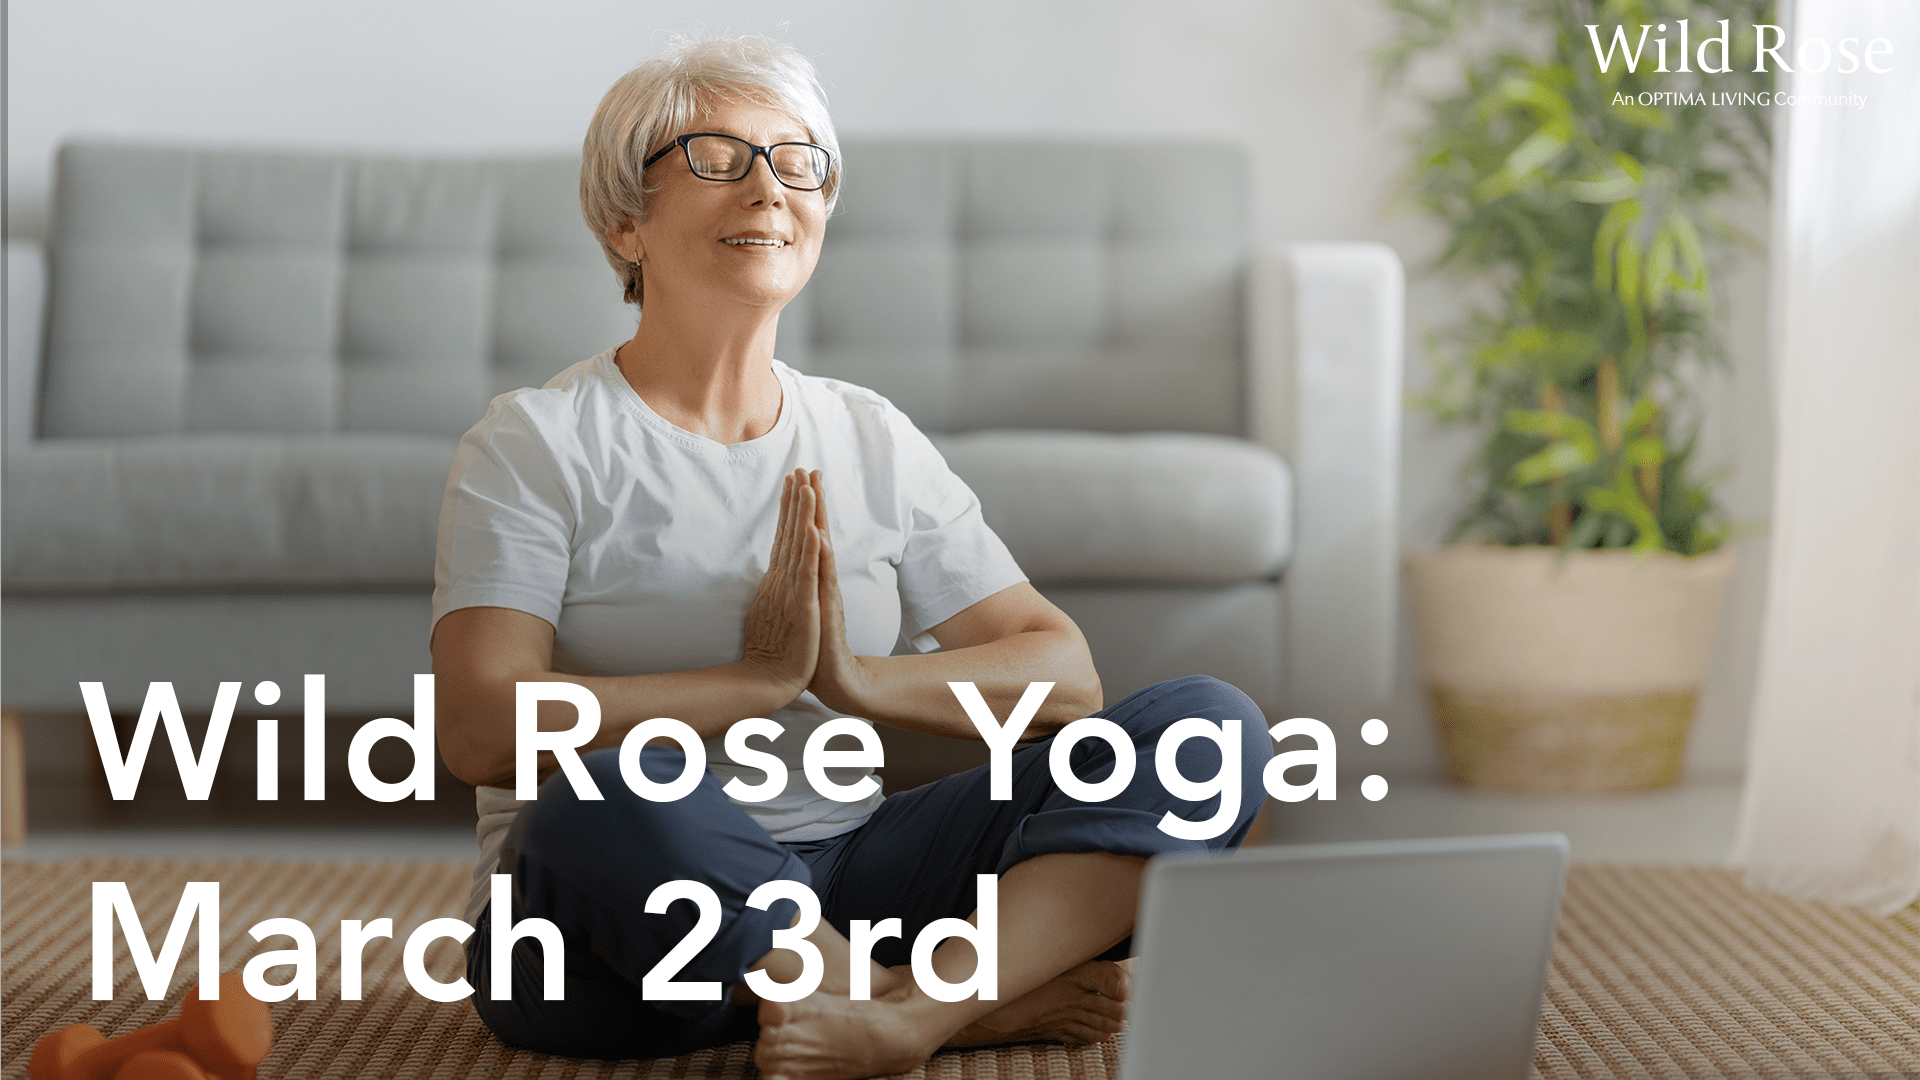 Wild Rose Yoga: March 23rd